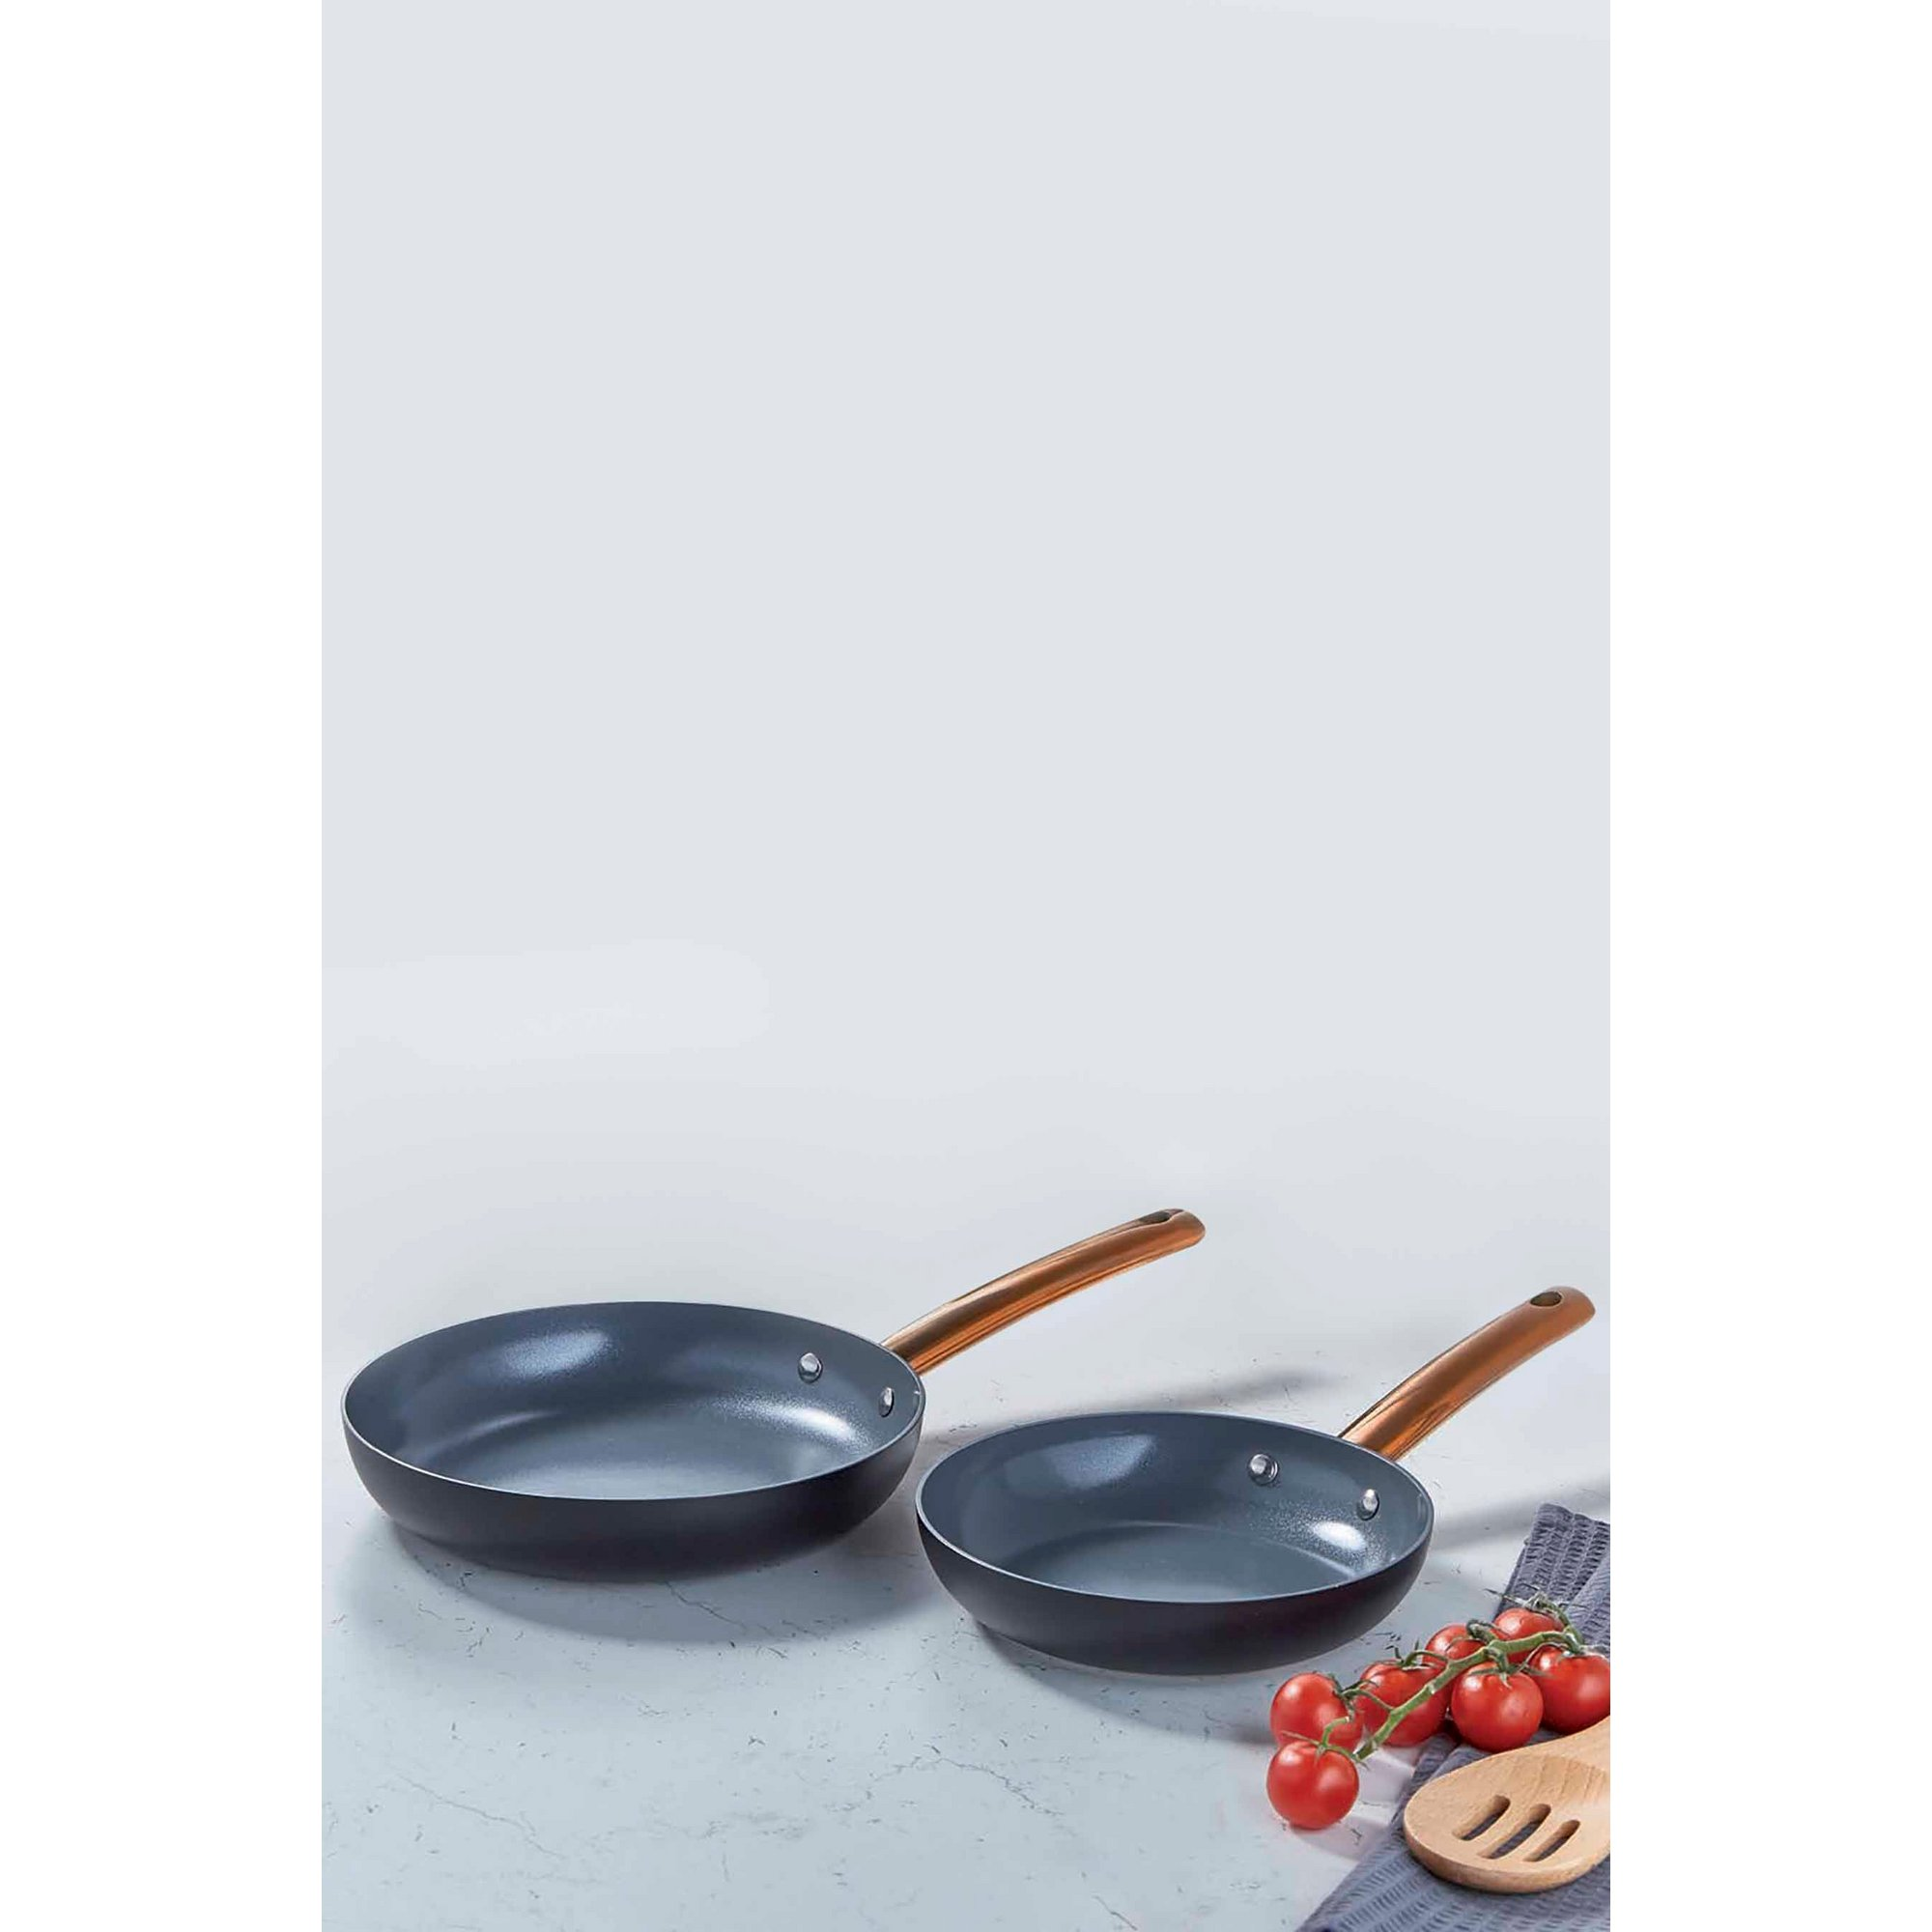 Image of 2-Piece Matt Black and Gold Non-Stick Fry Pan Set